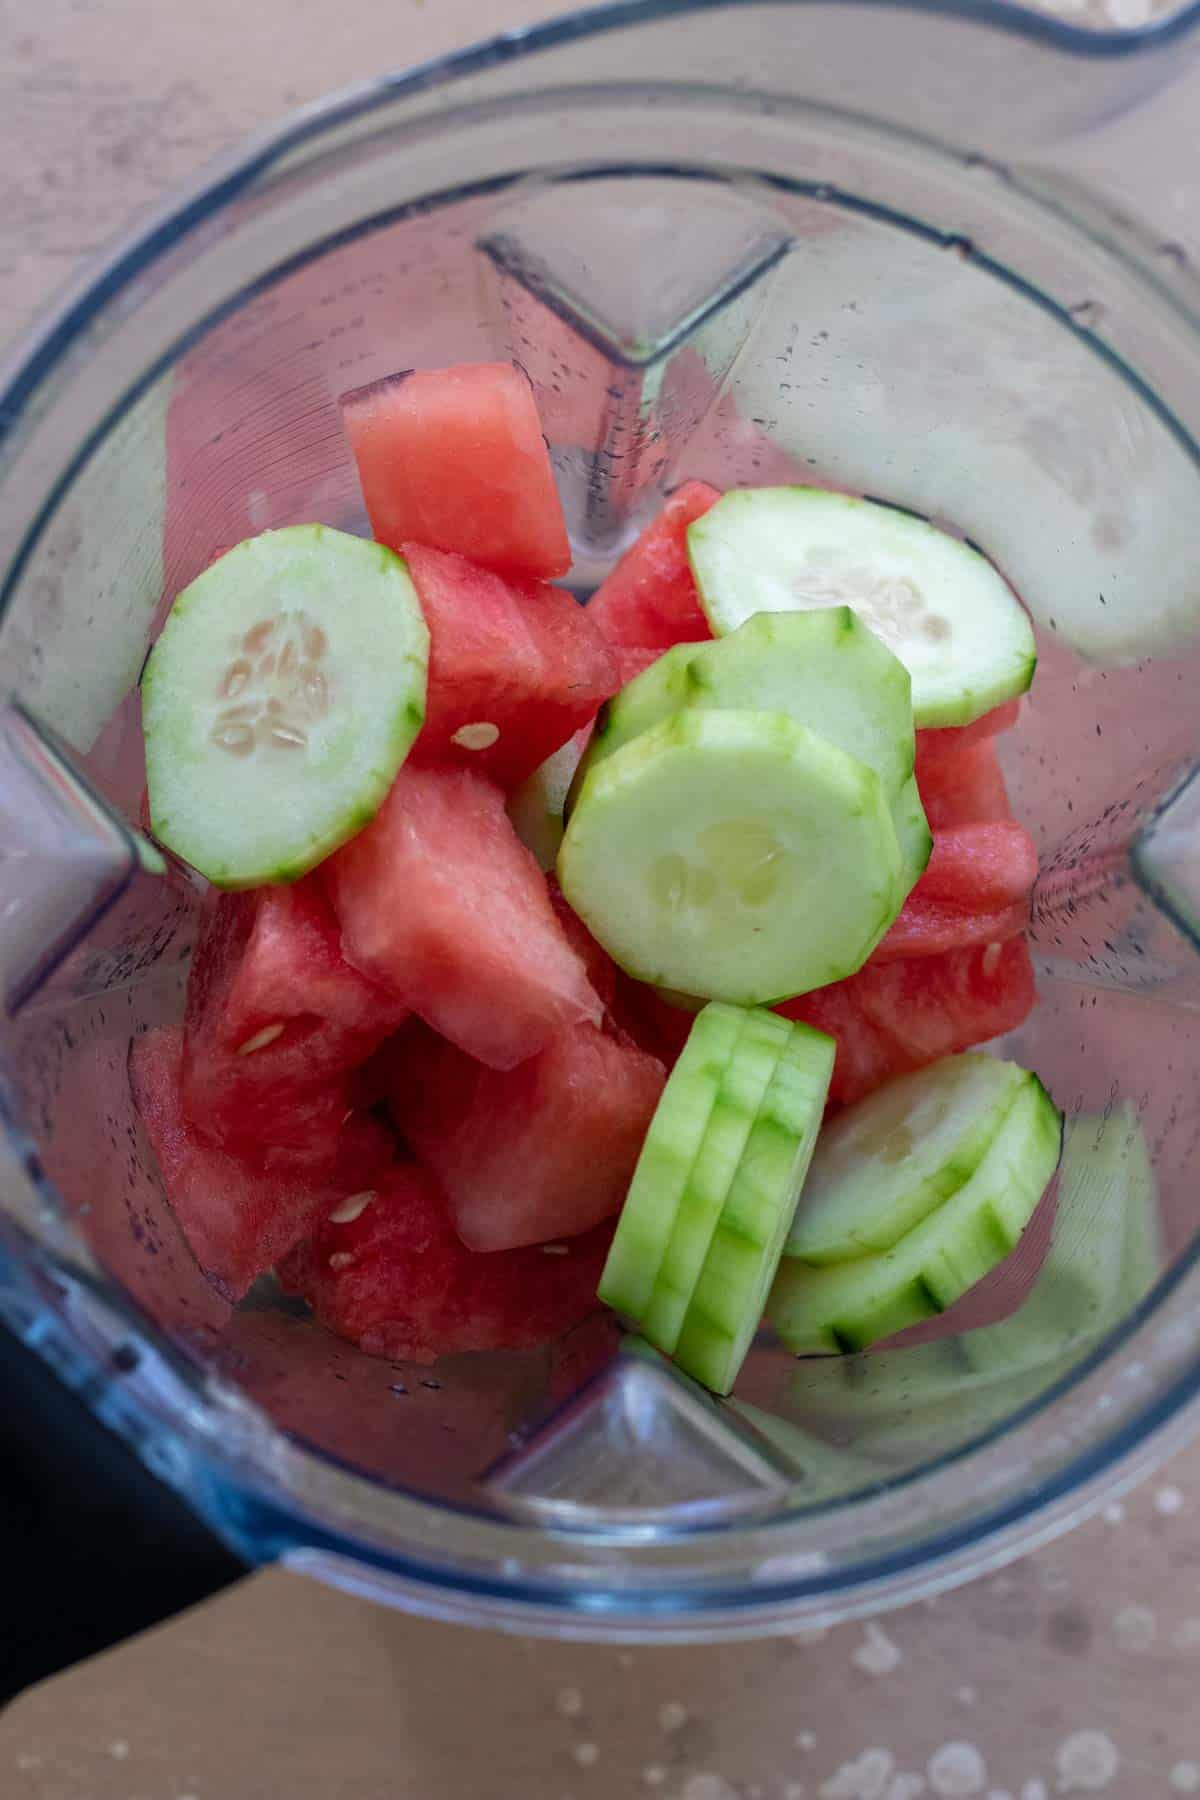 Cubed watermelon and cucumber slices in blender canister before blending.